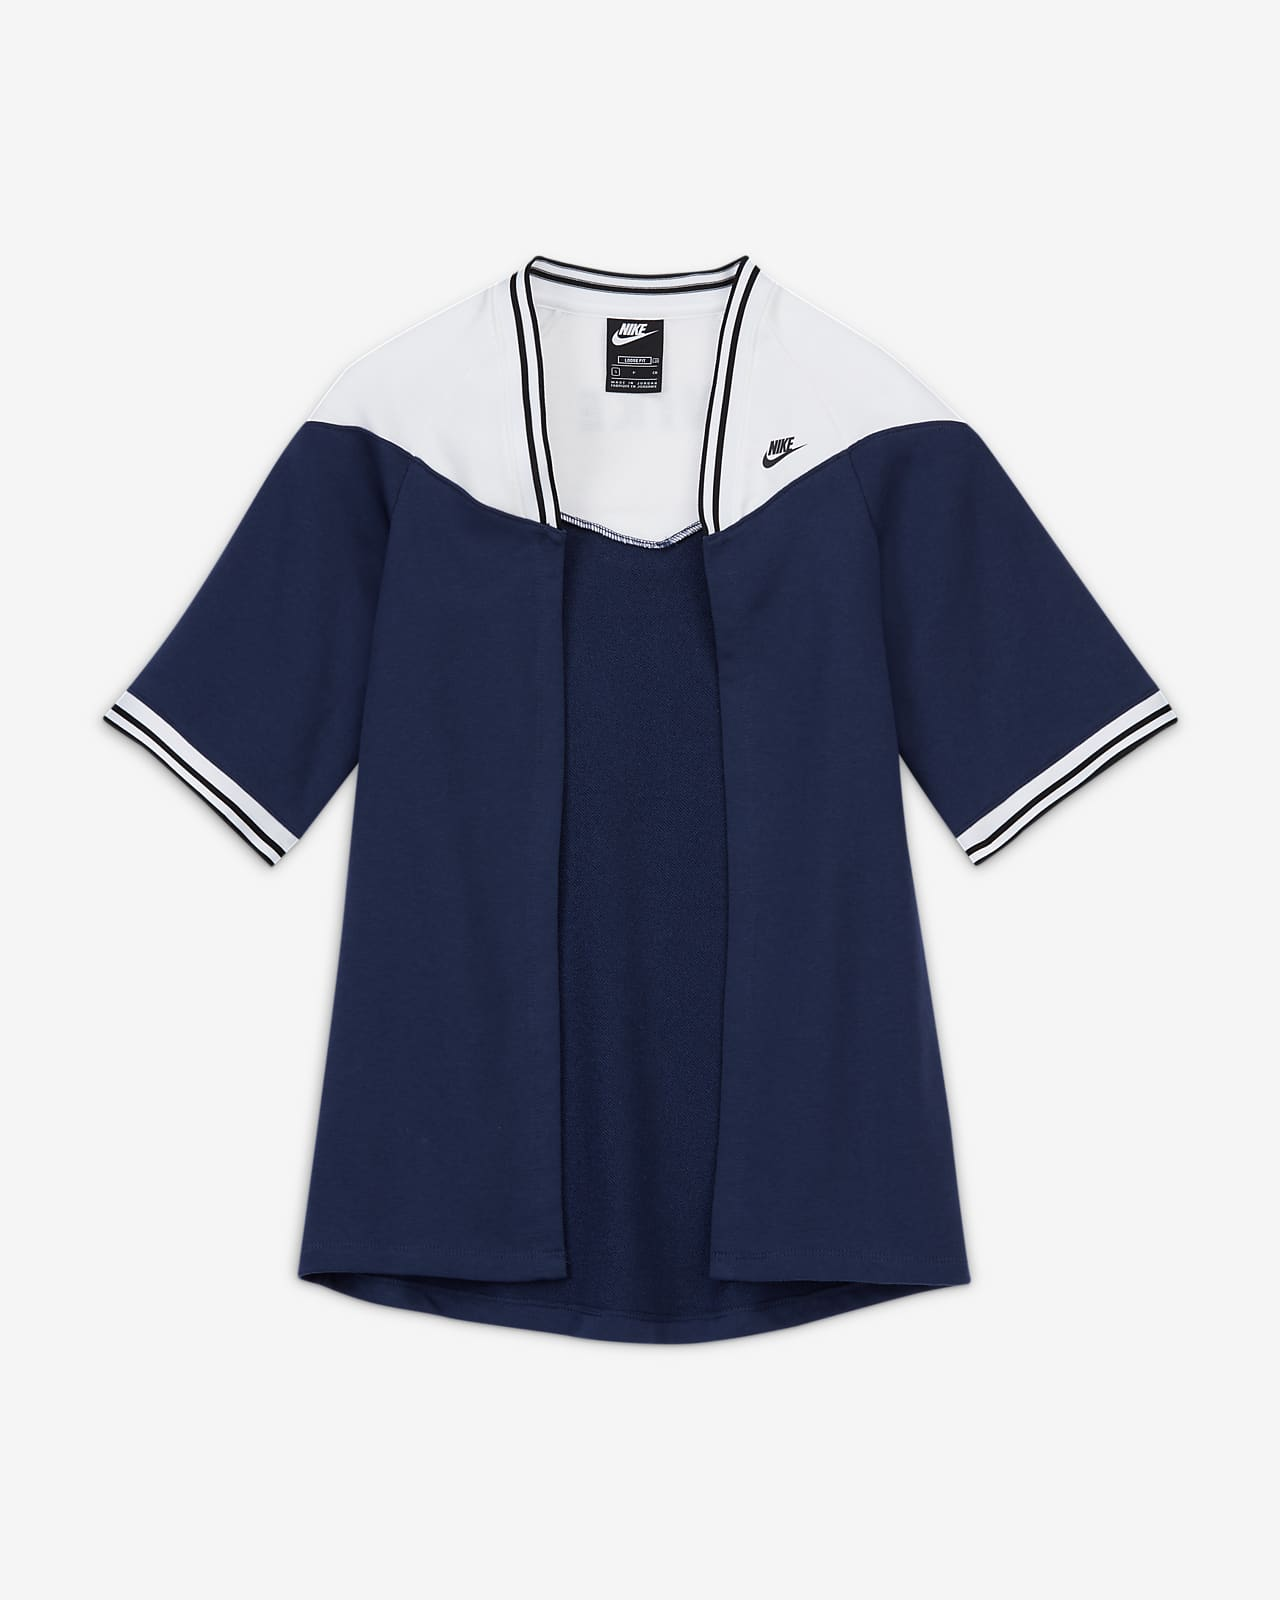 Nike Sportswear Big Kids' (Girls') Sweater